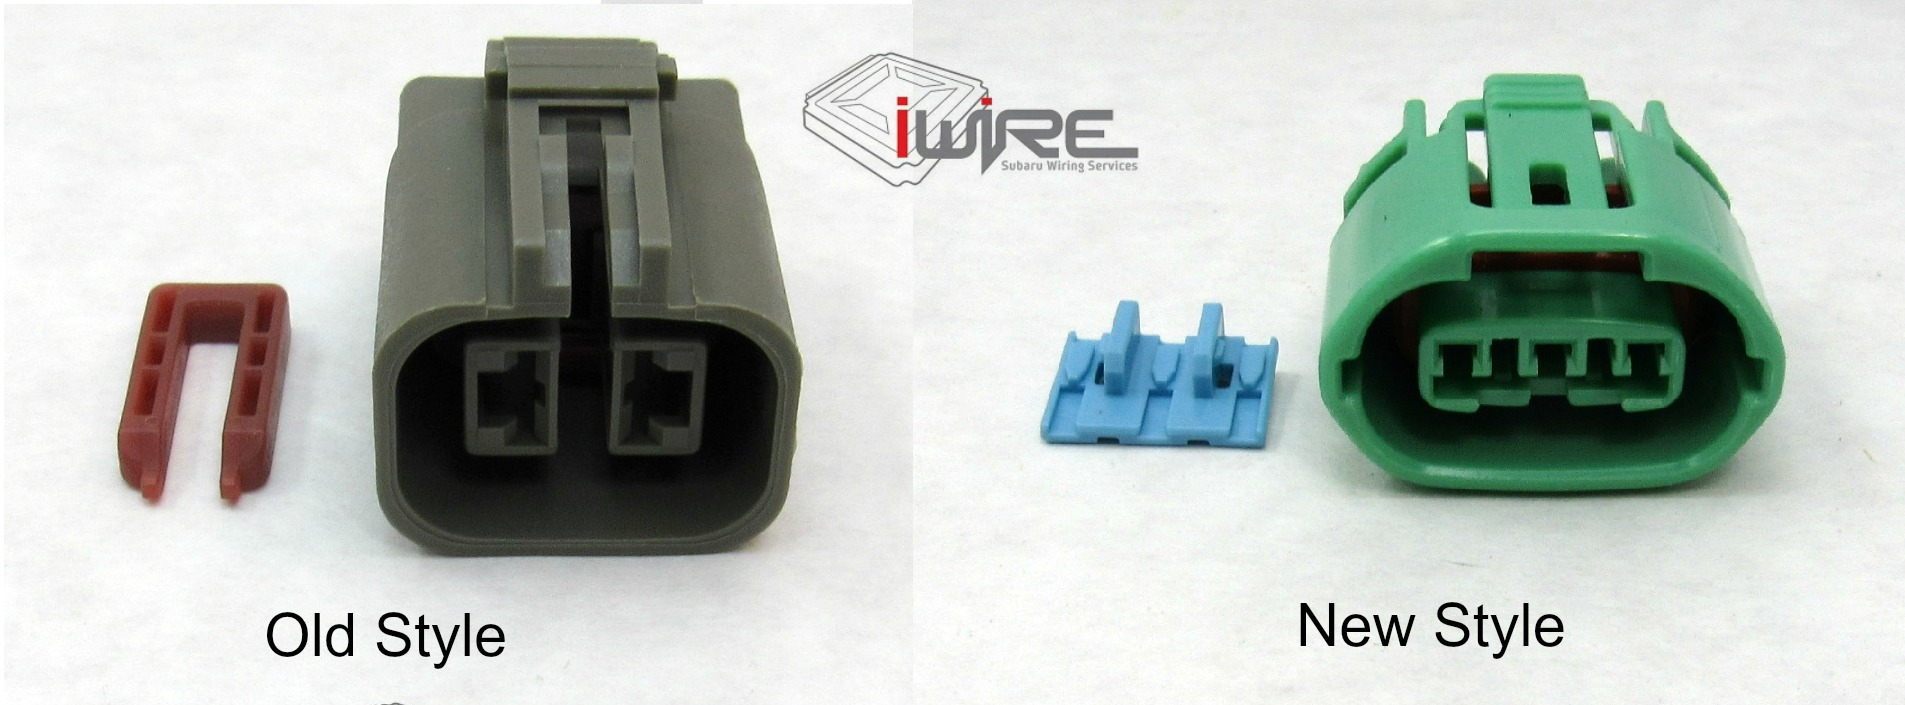 hight resolution of subaru alternator plugs subaru wiring harnesses and adapters iwire subaru wiring services